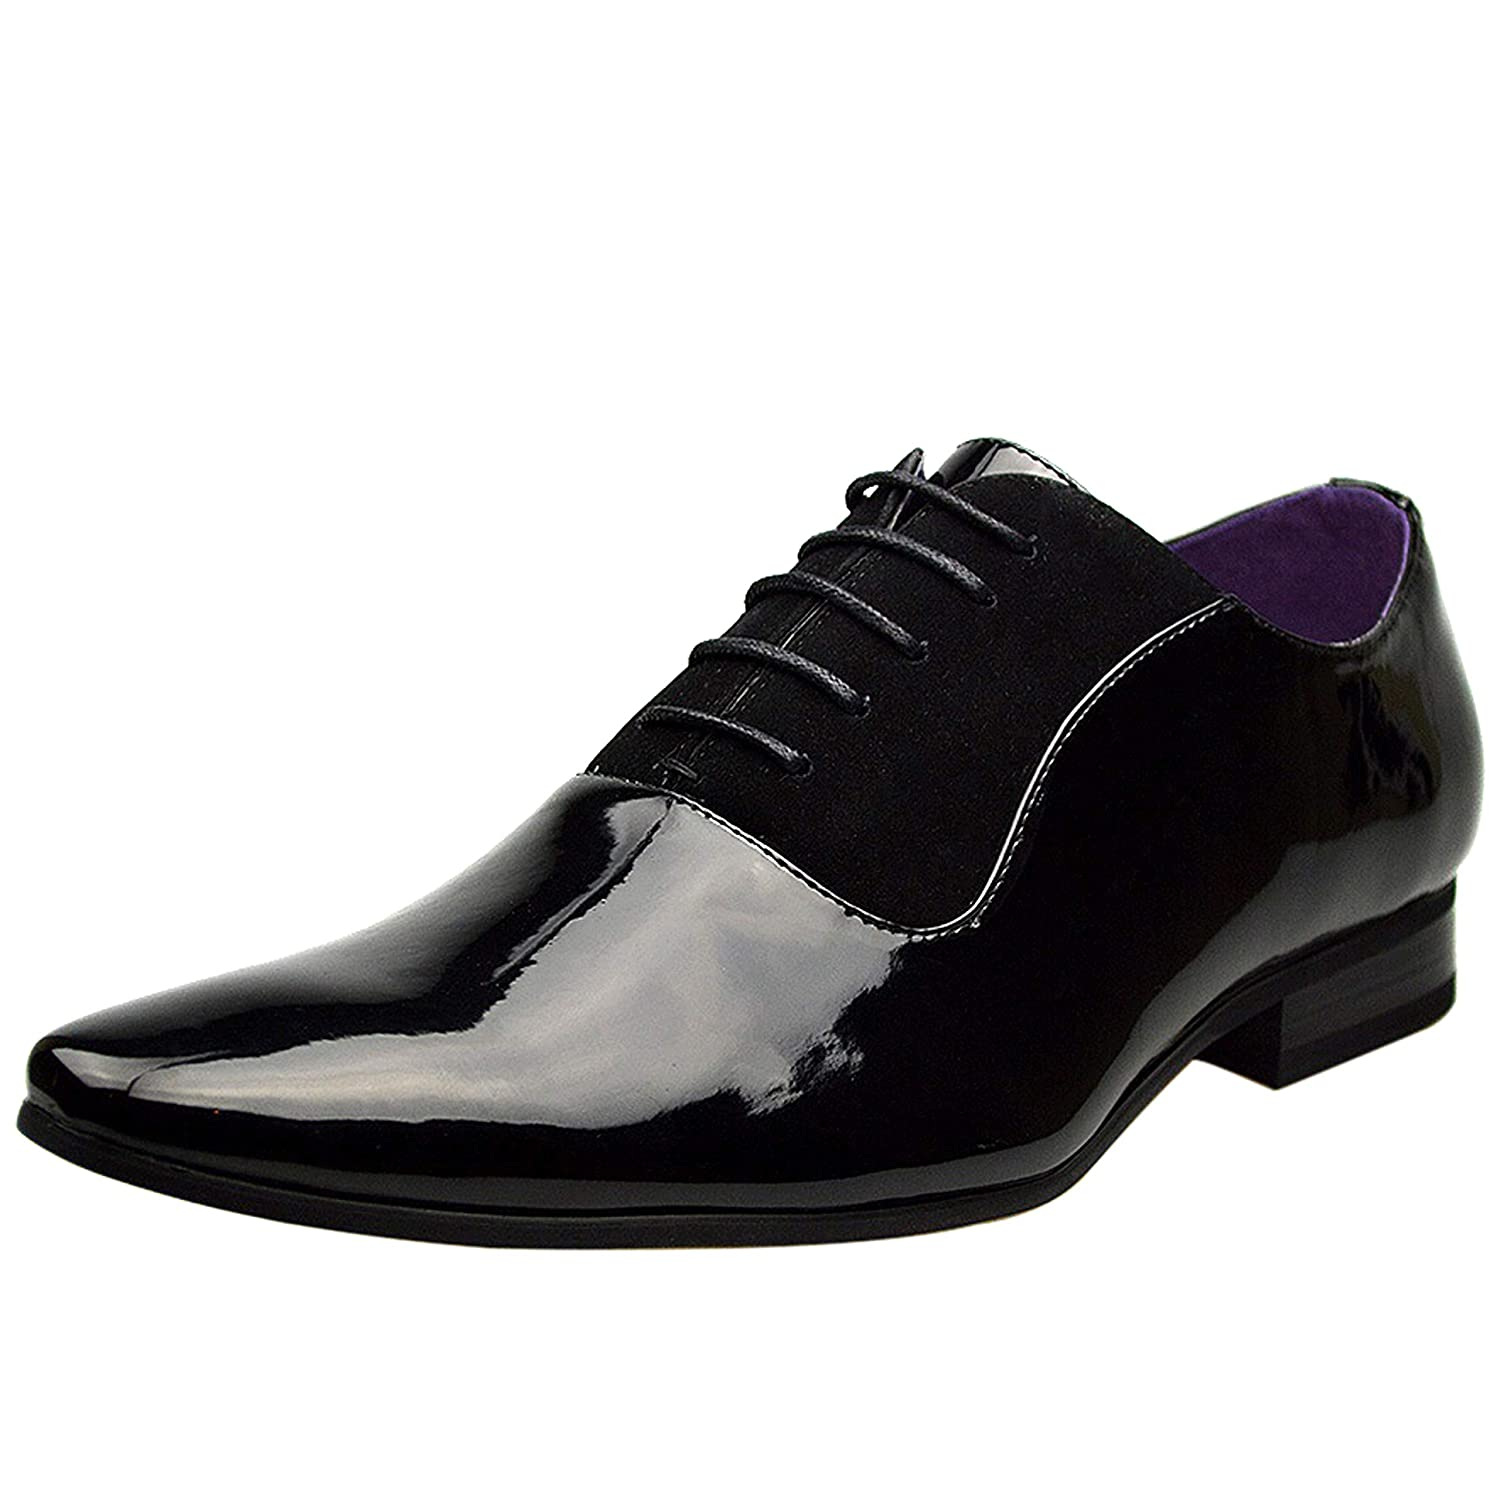 TALLA 41 EU. Para hombre New Casual piel de color negro Smart formal Lace Up Zapatos Reino Unido tamaño 6 7 8 9 10 11